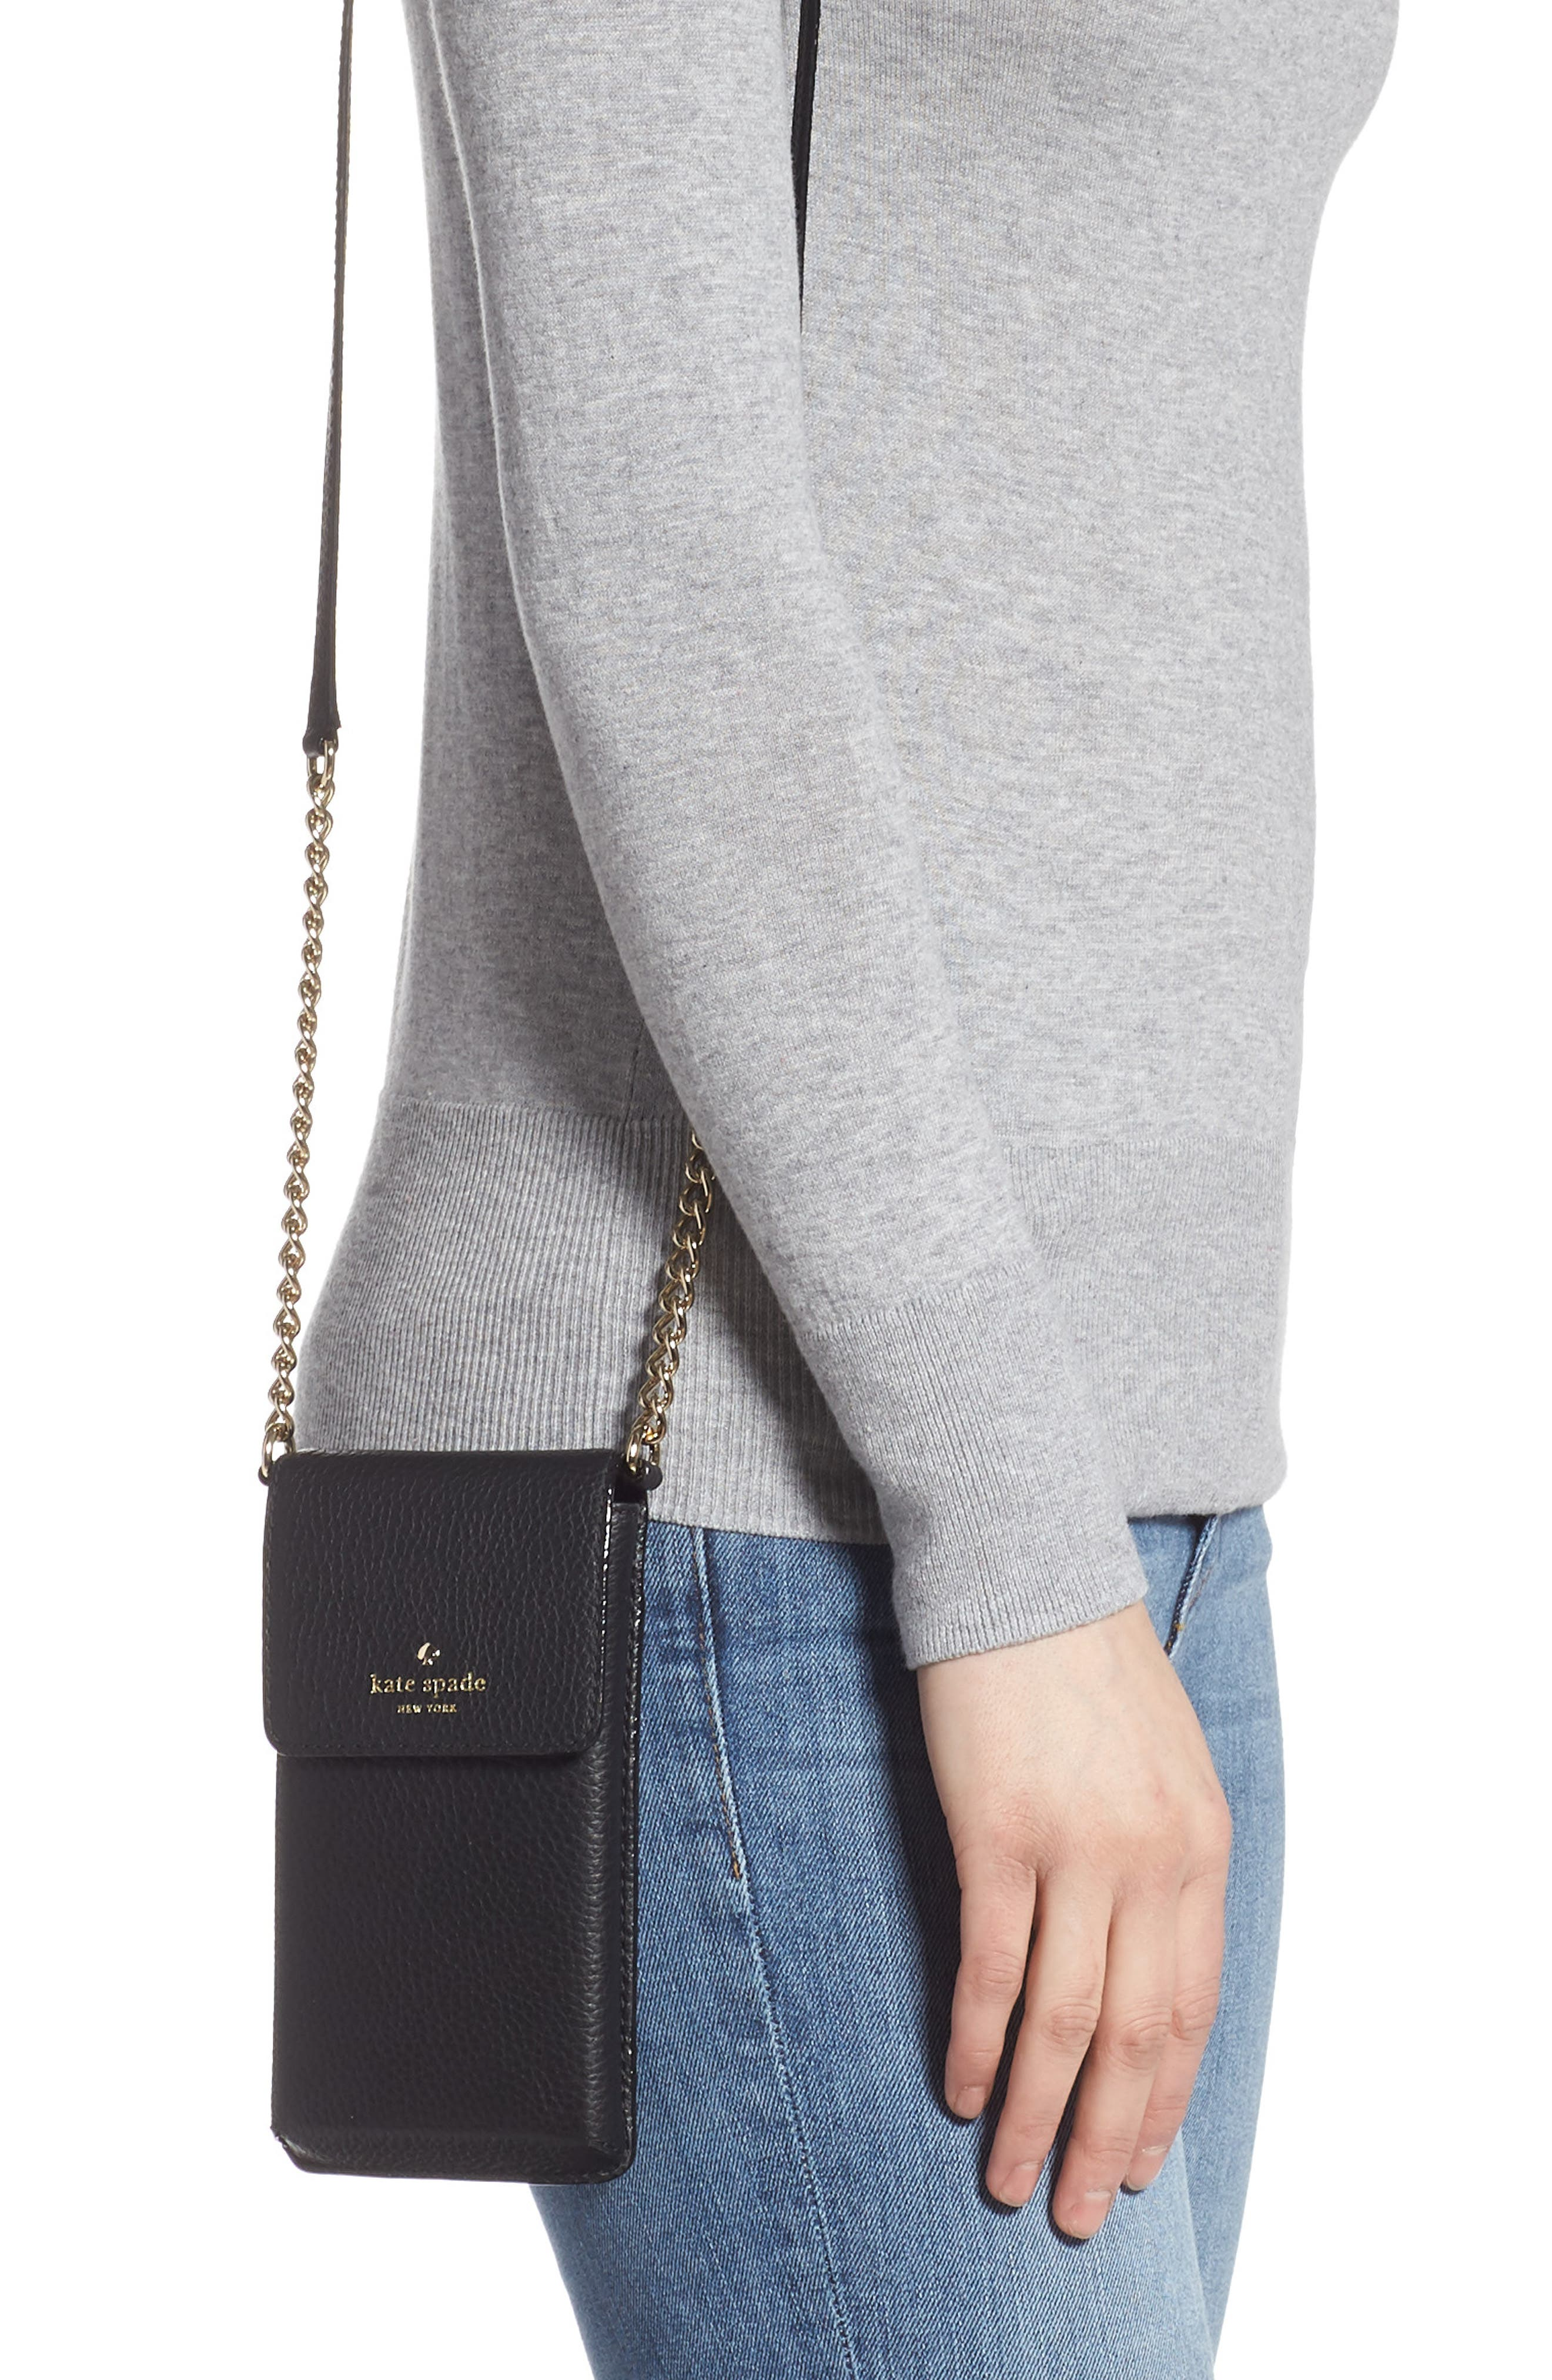 KATE SPADE NEW YORK,                             north/south leather smartphone crossbody bag,                             Alternate thumbnail 2, color,                             001